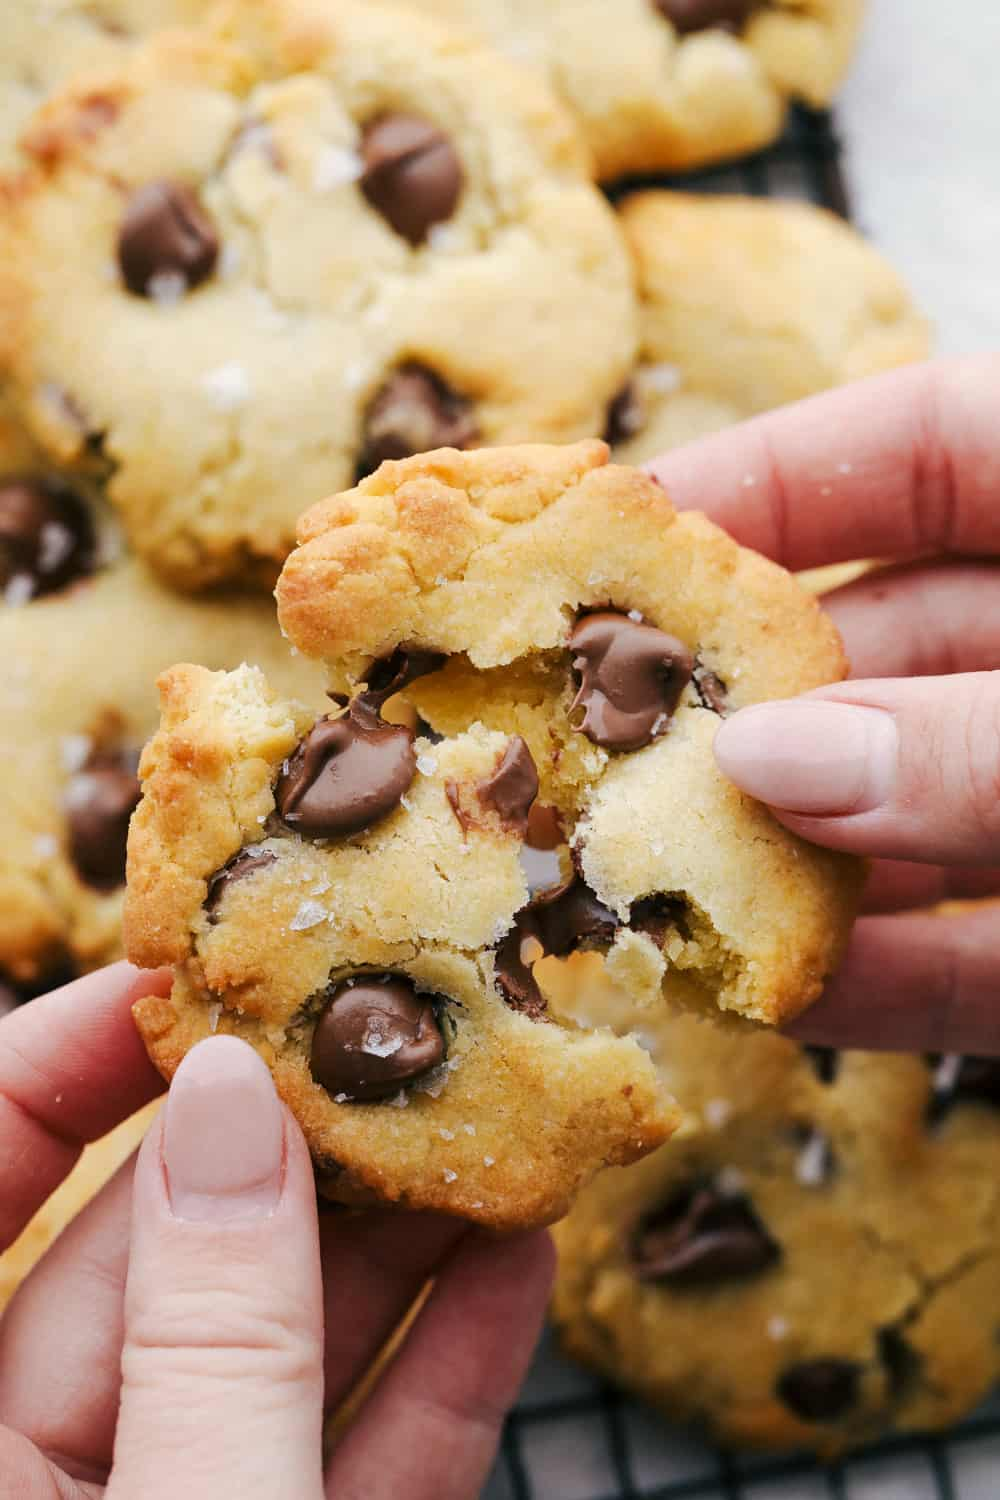 Breaking apart a cookie with melting chocolate.